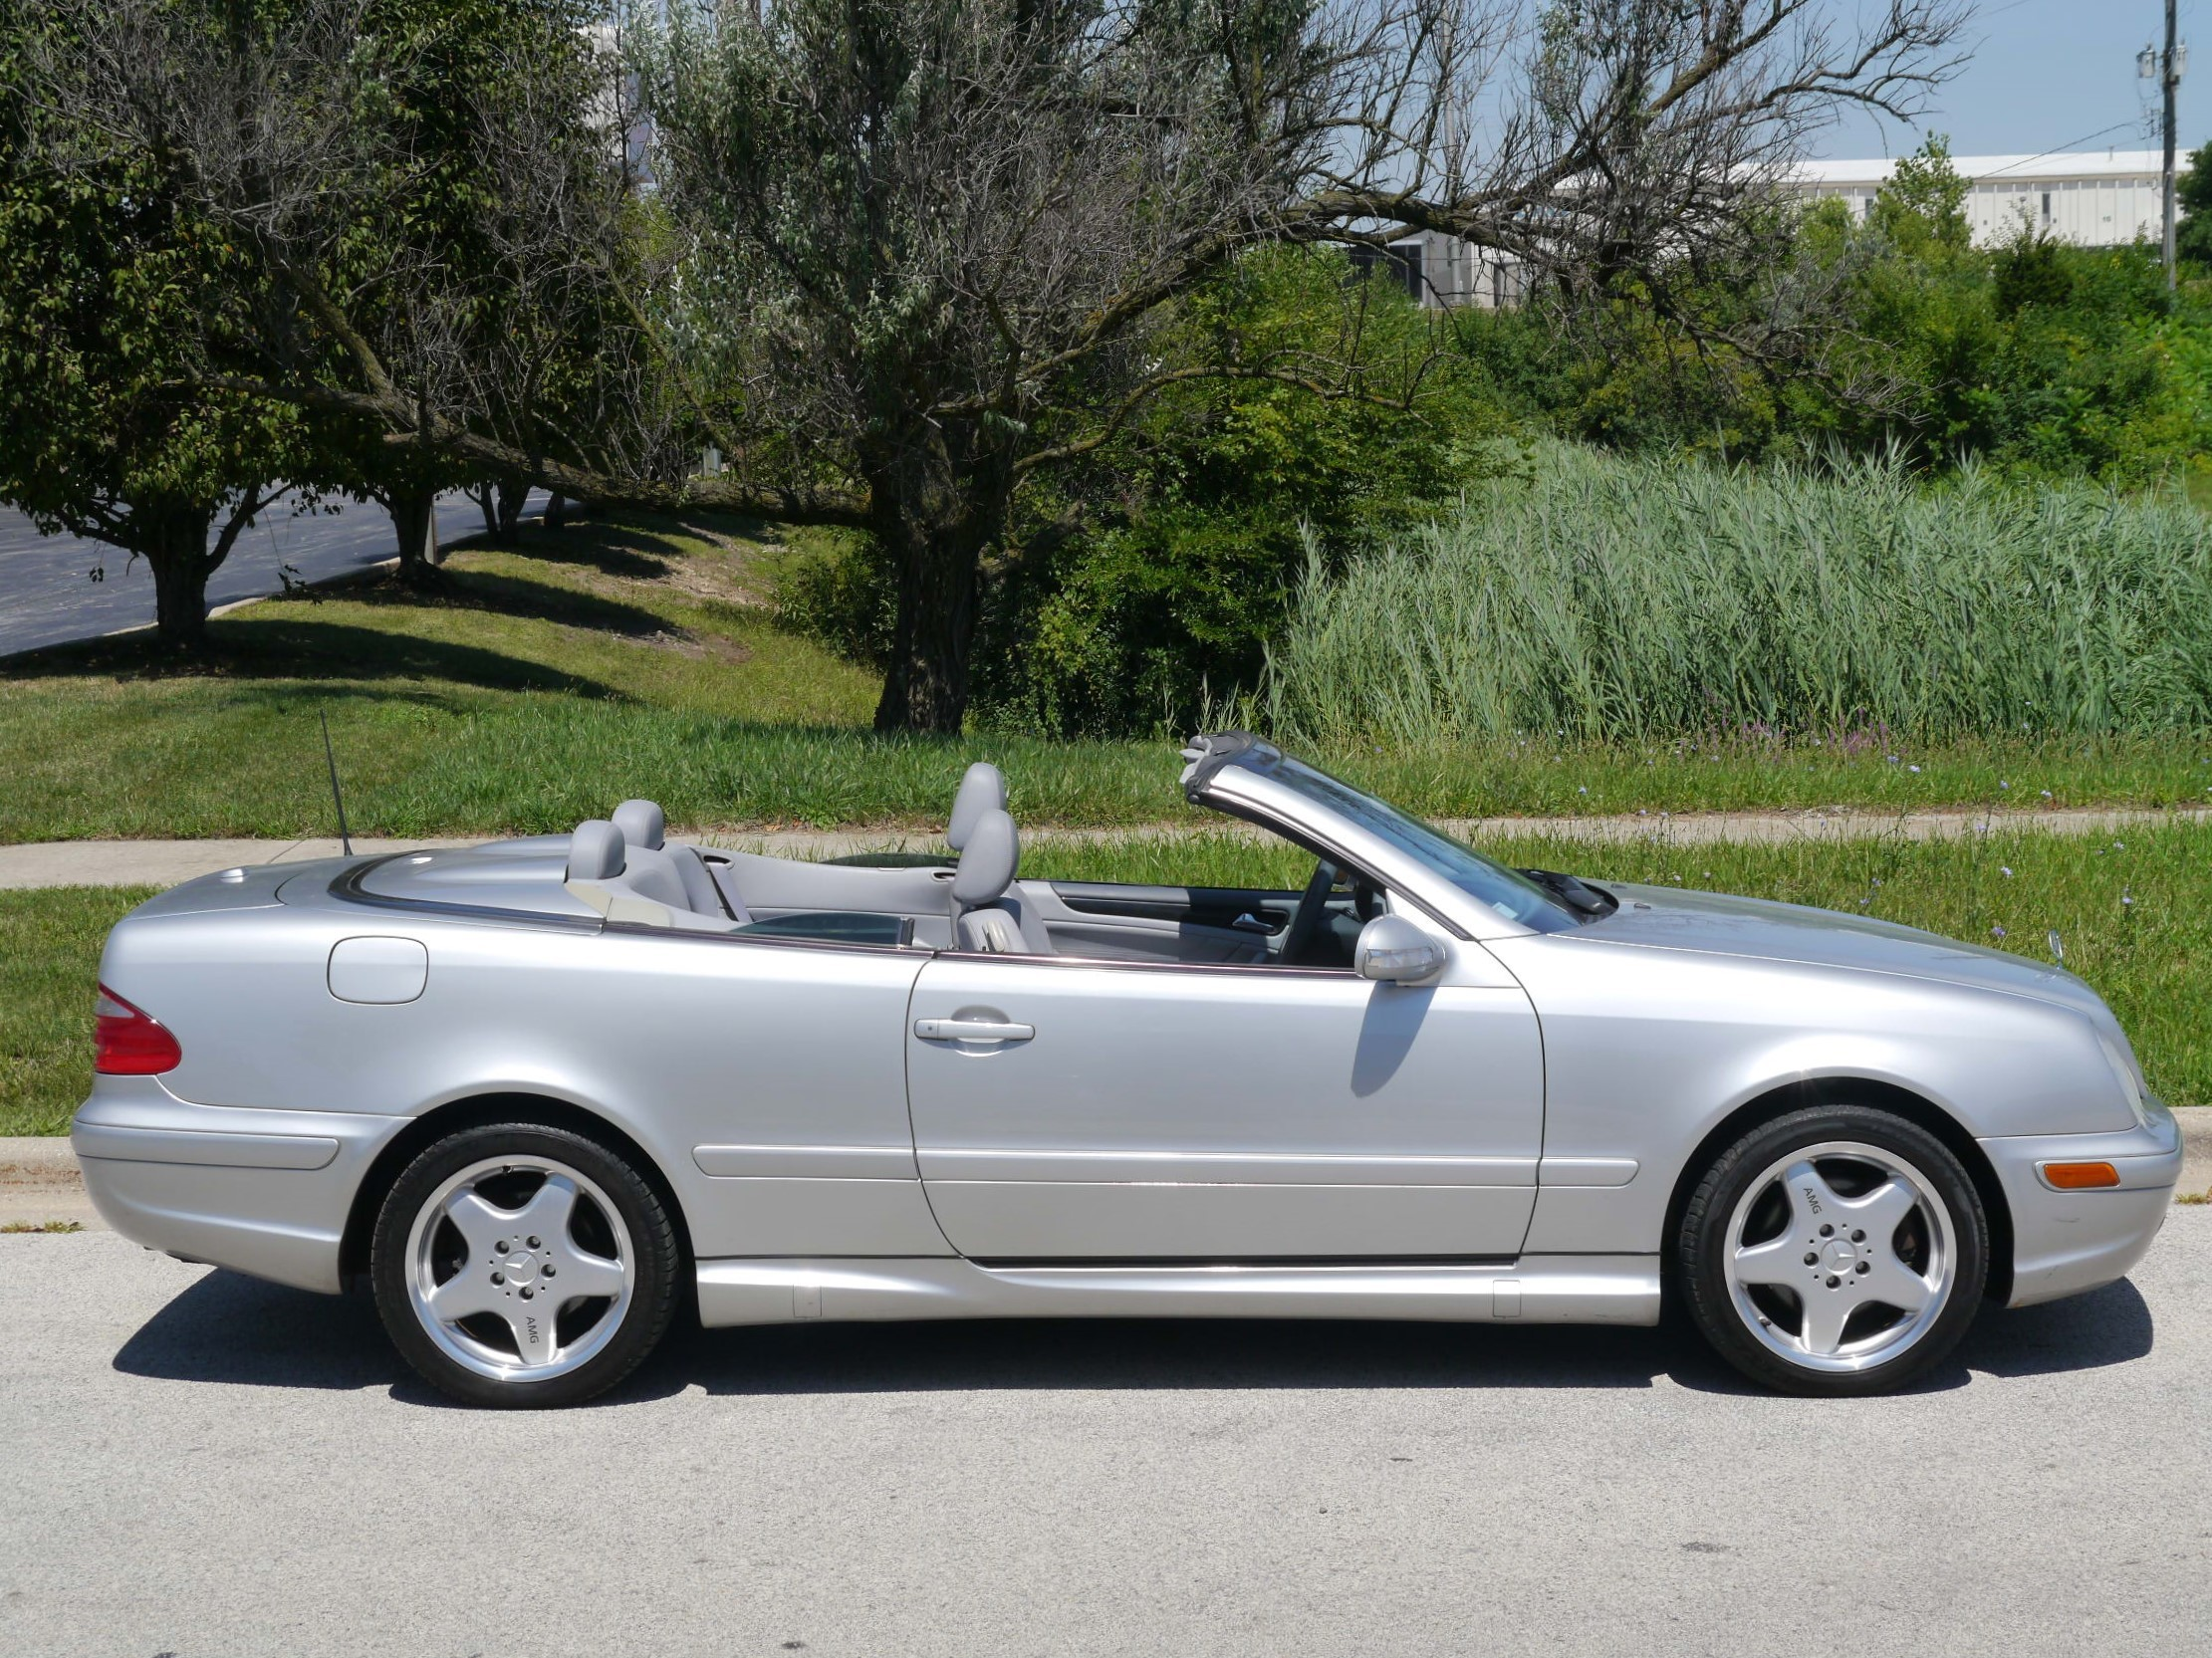 2001 mercedes benz clk430 midwest car exchange for 2001 mercedes benz clk430